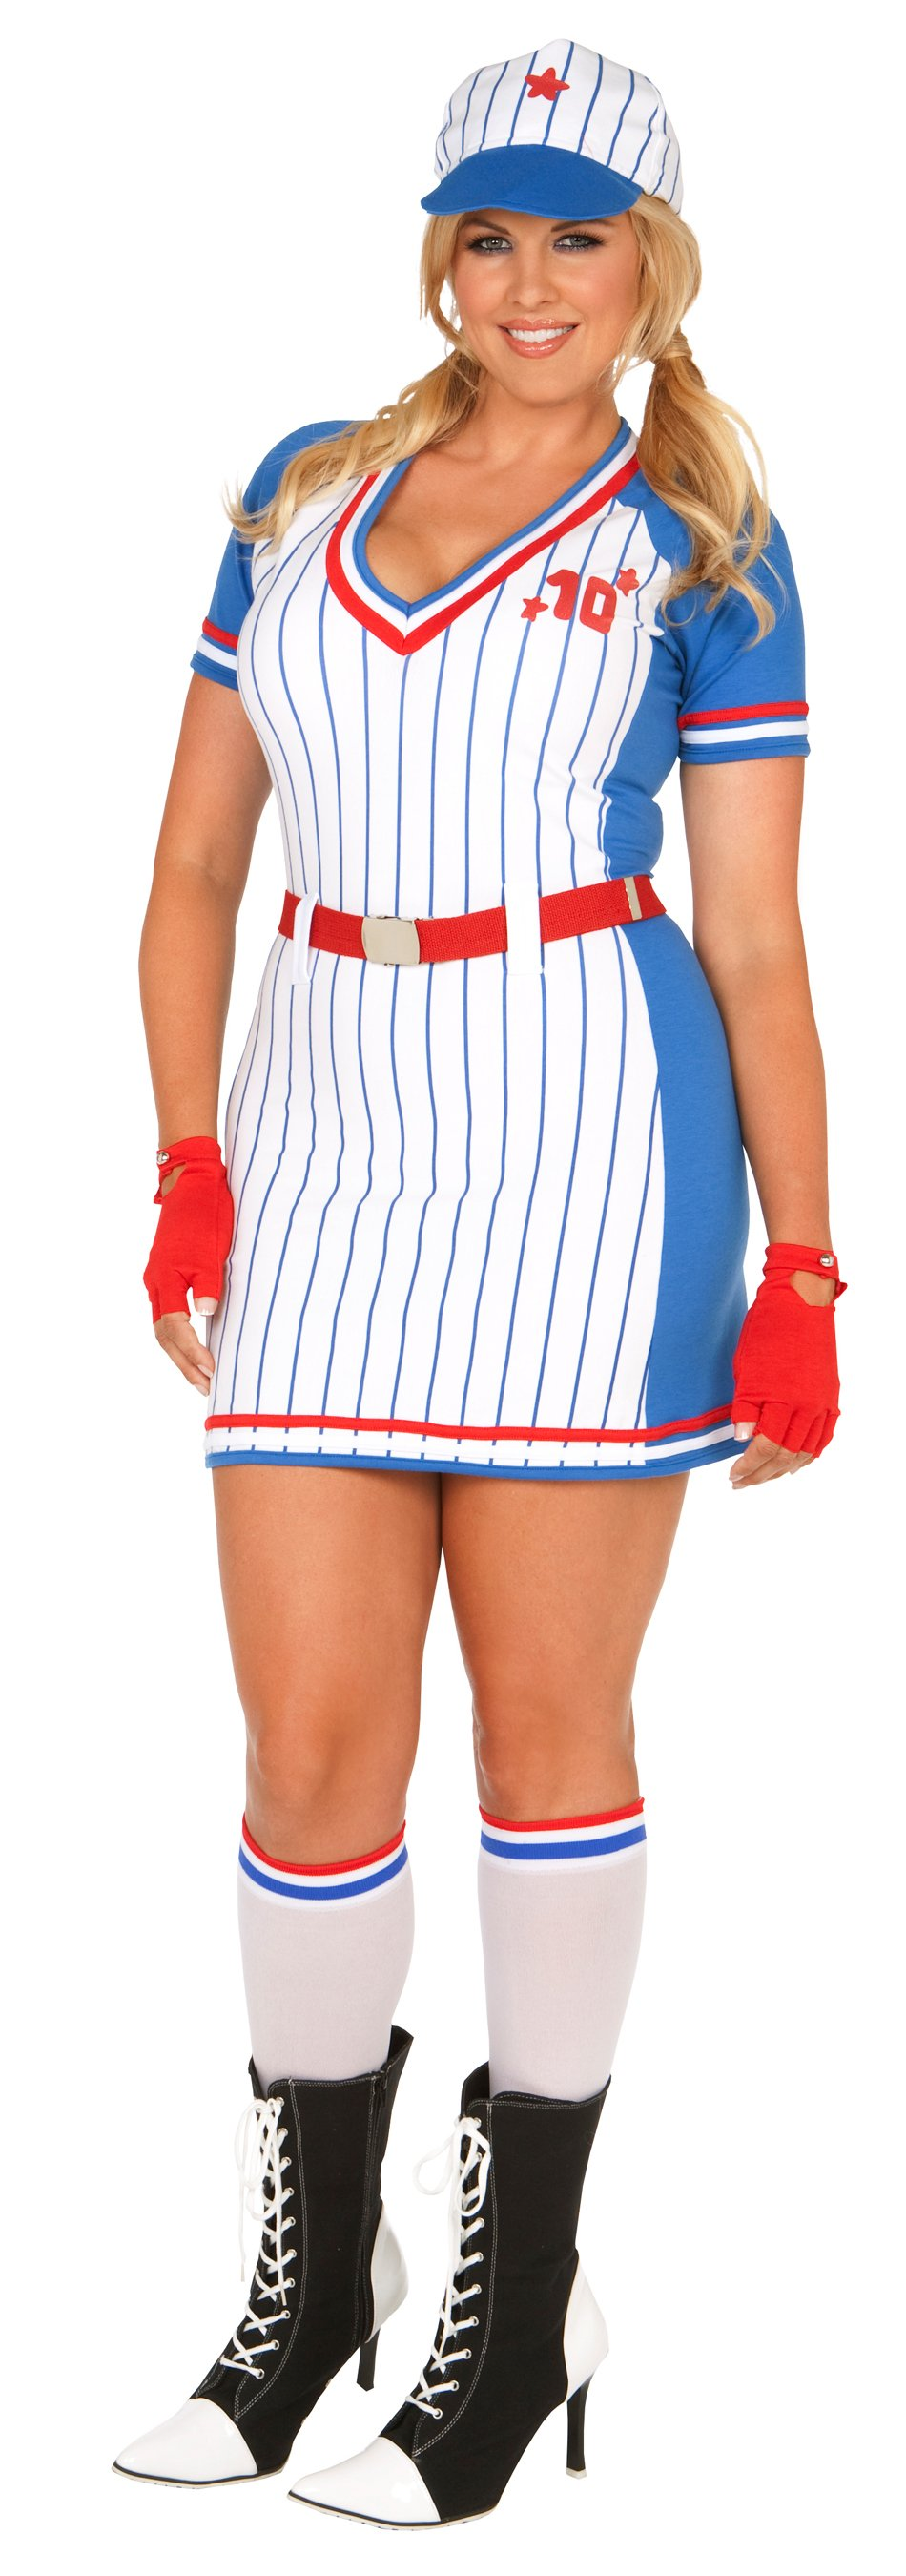 All American Player Adult Plus Costume